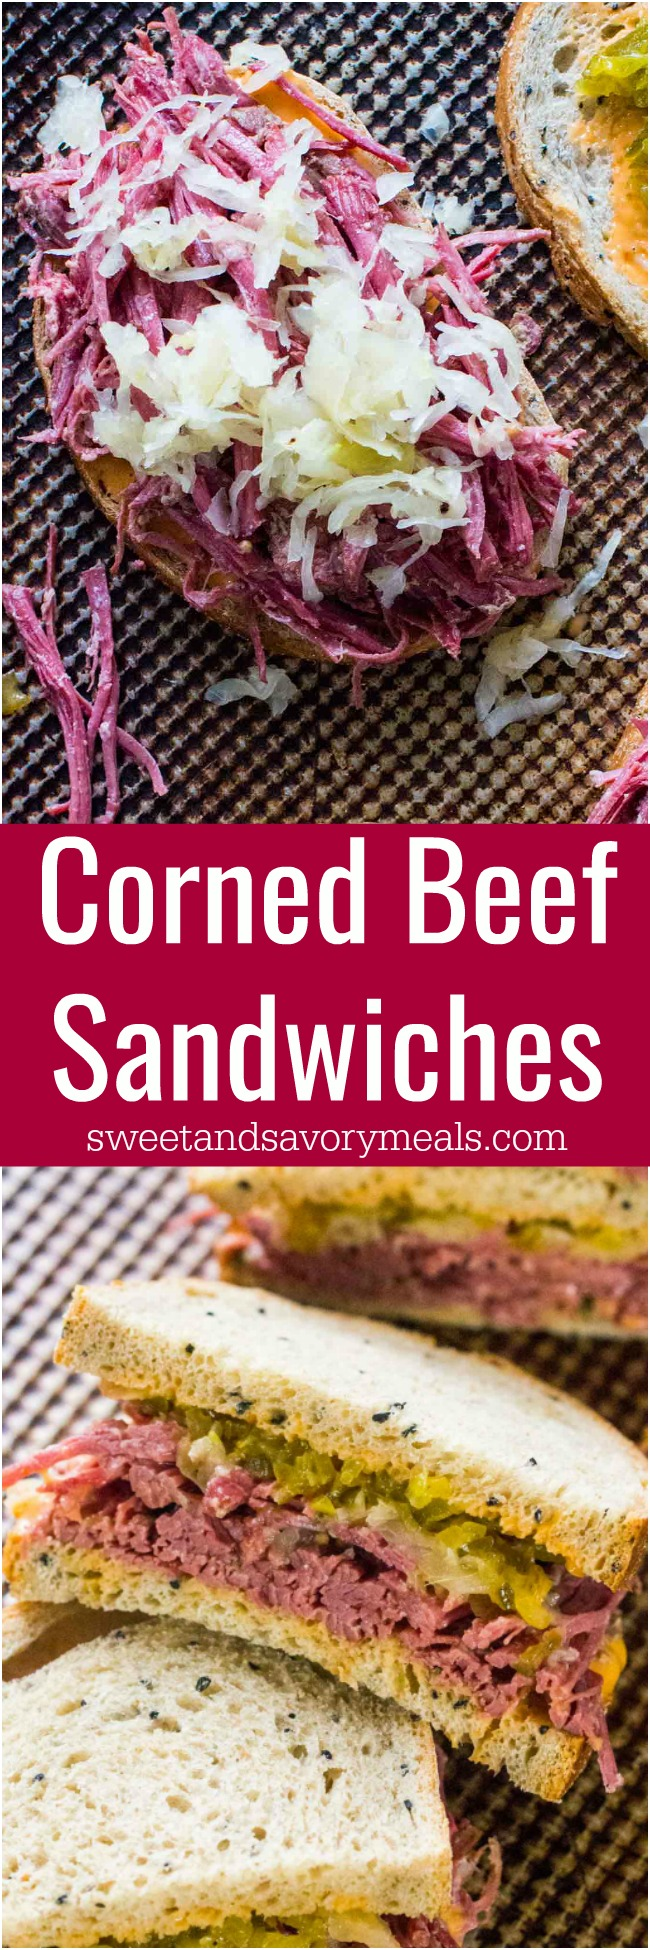 Picture of corned beef sandwiches for st patricks day.